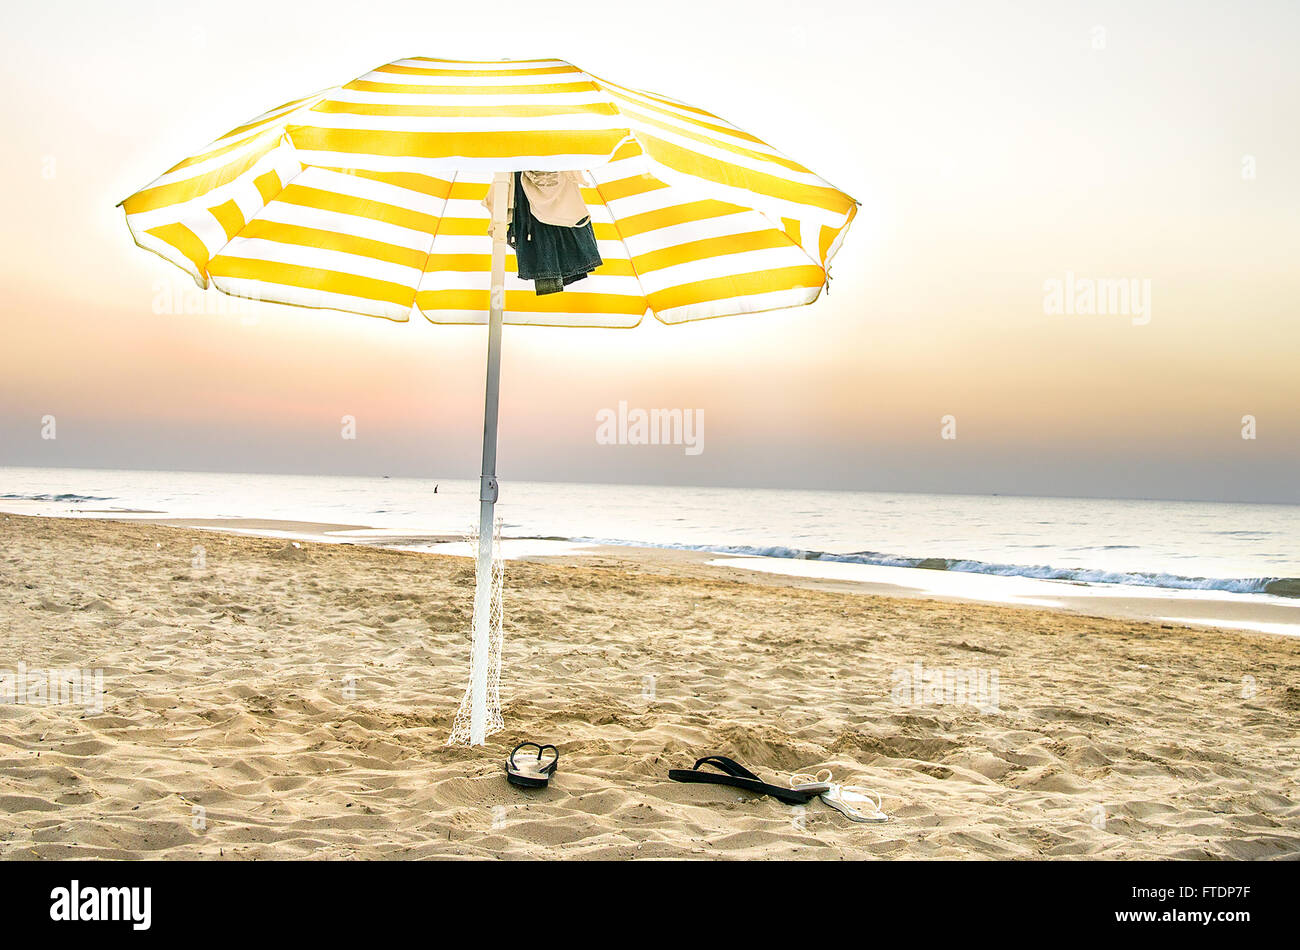 yellow umbrella lonely on the beach at sunset in Puglia - Stock Image